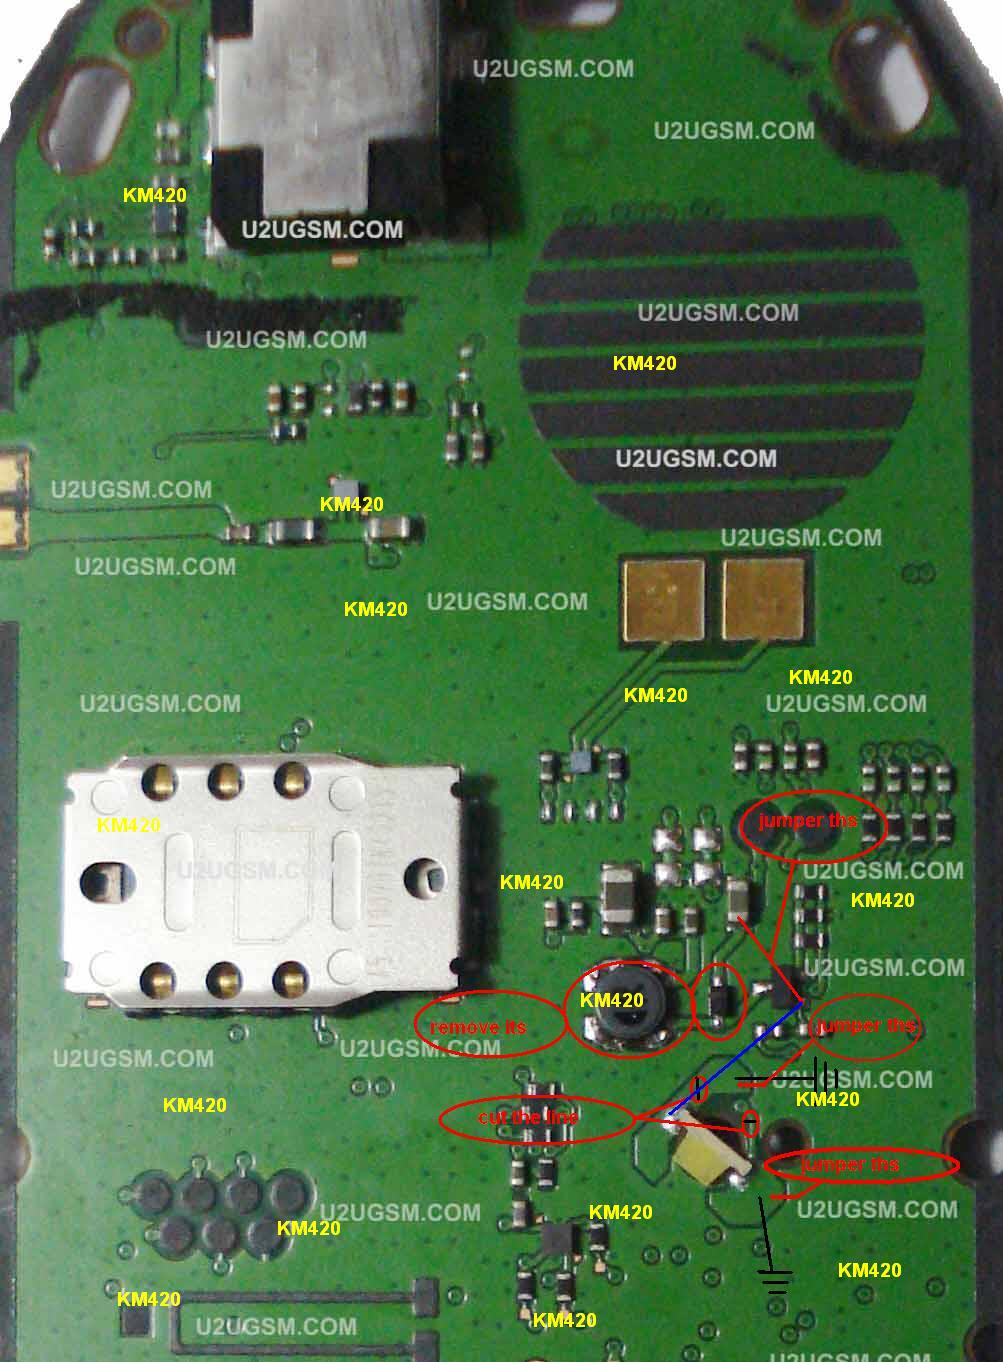 Hardware Solutions March 2012 Line Sim Bb9800 Short Circuit For Repair Gsmforum Nokia 1280 Light Solution 100 Test Me